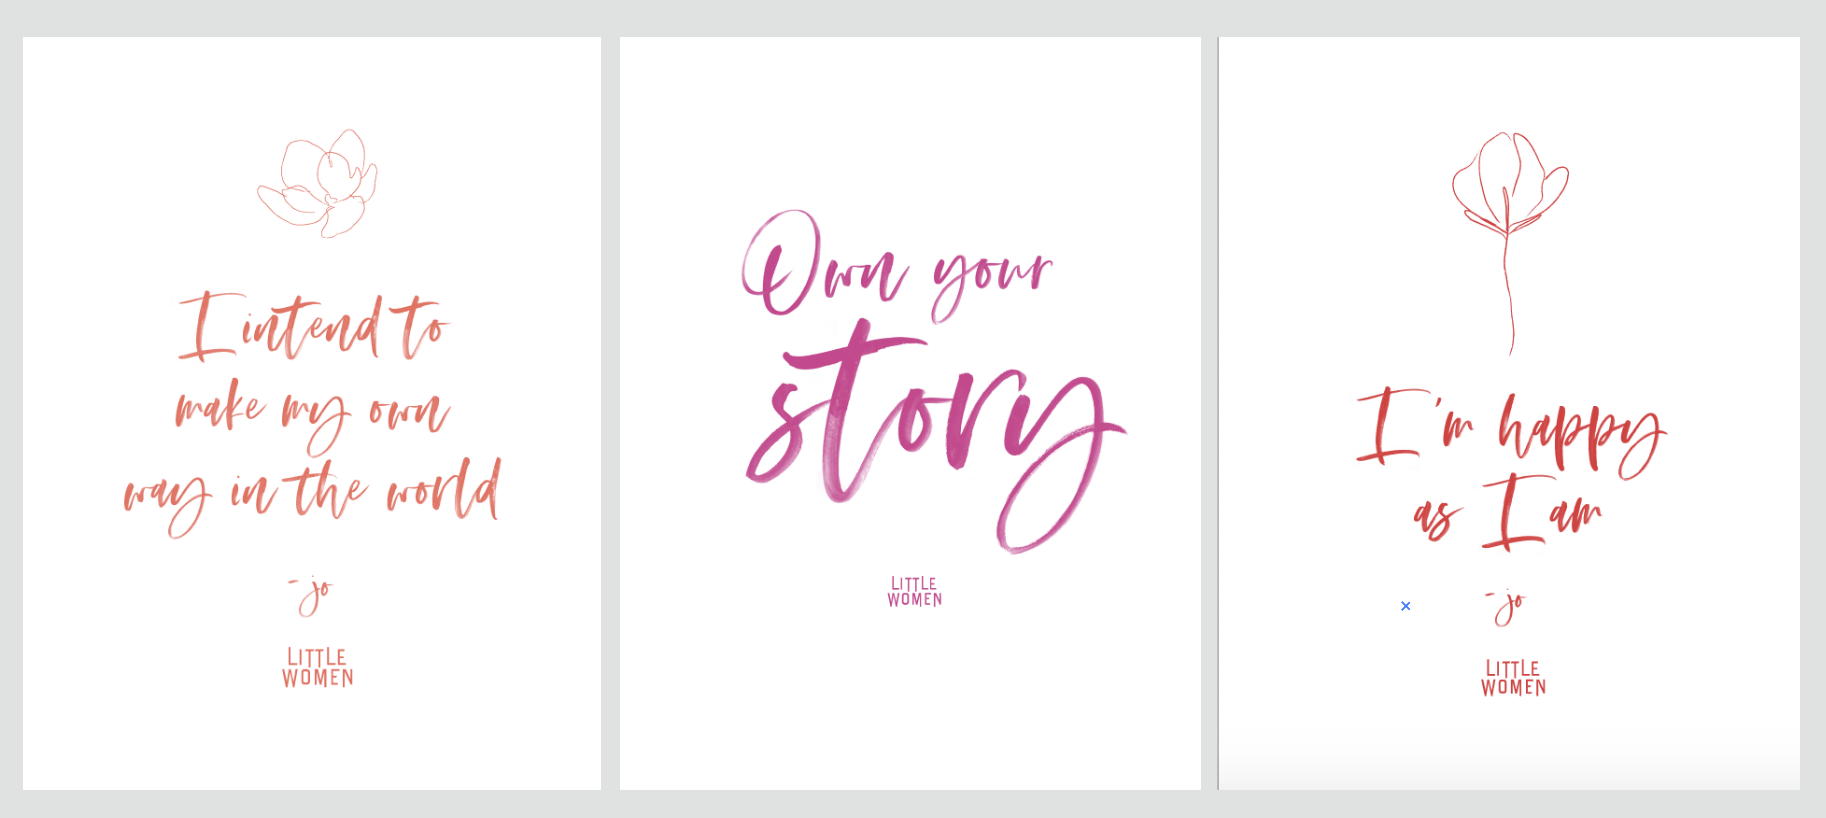 2 - Little Women movie quotes framed and stationery - Annie Johnson, Design Love Life